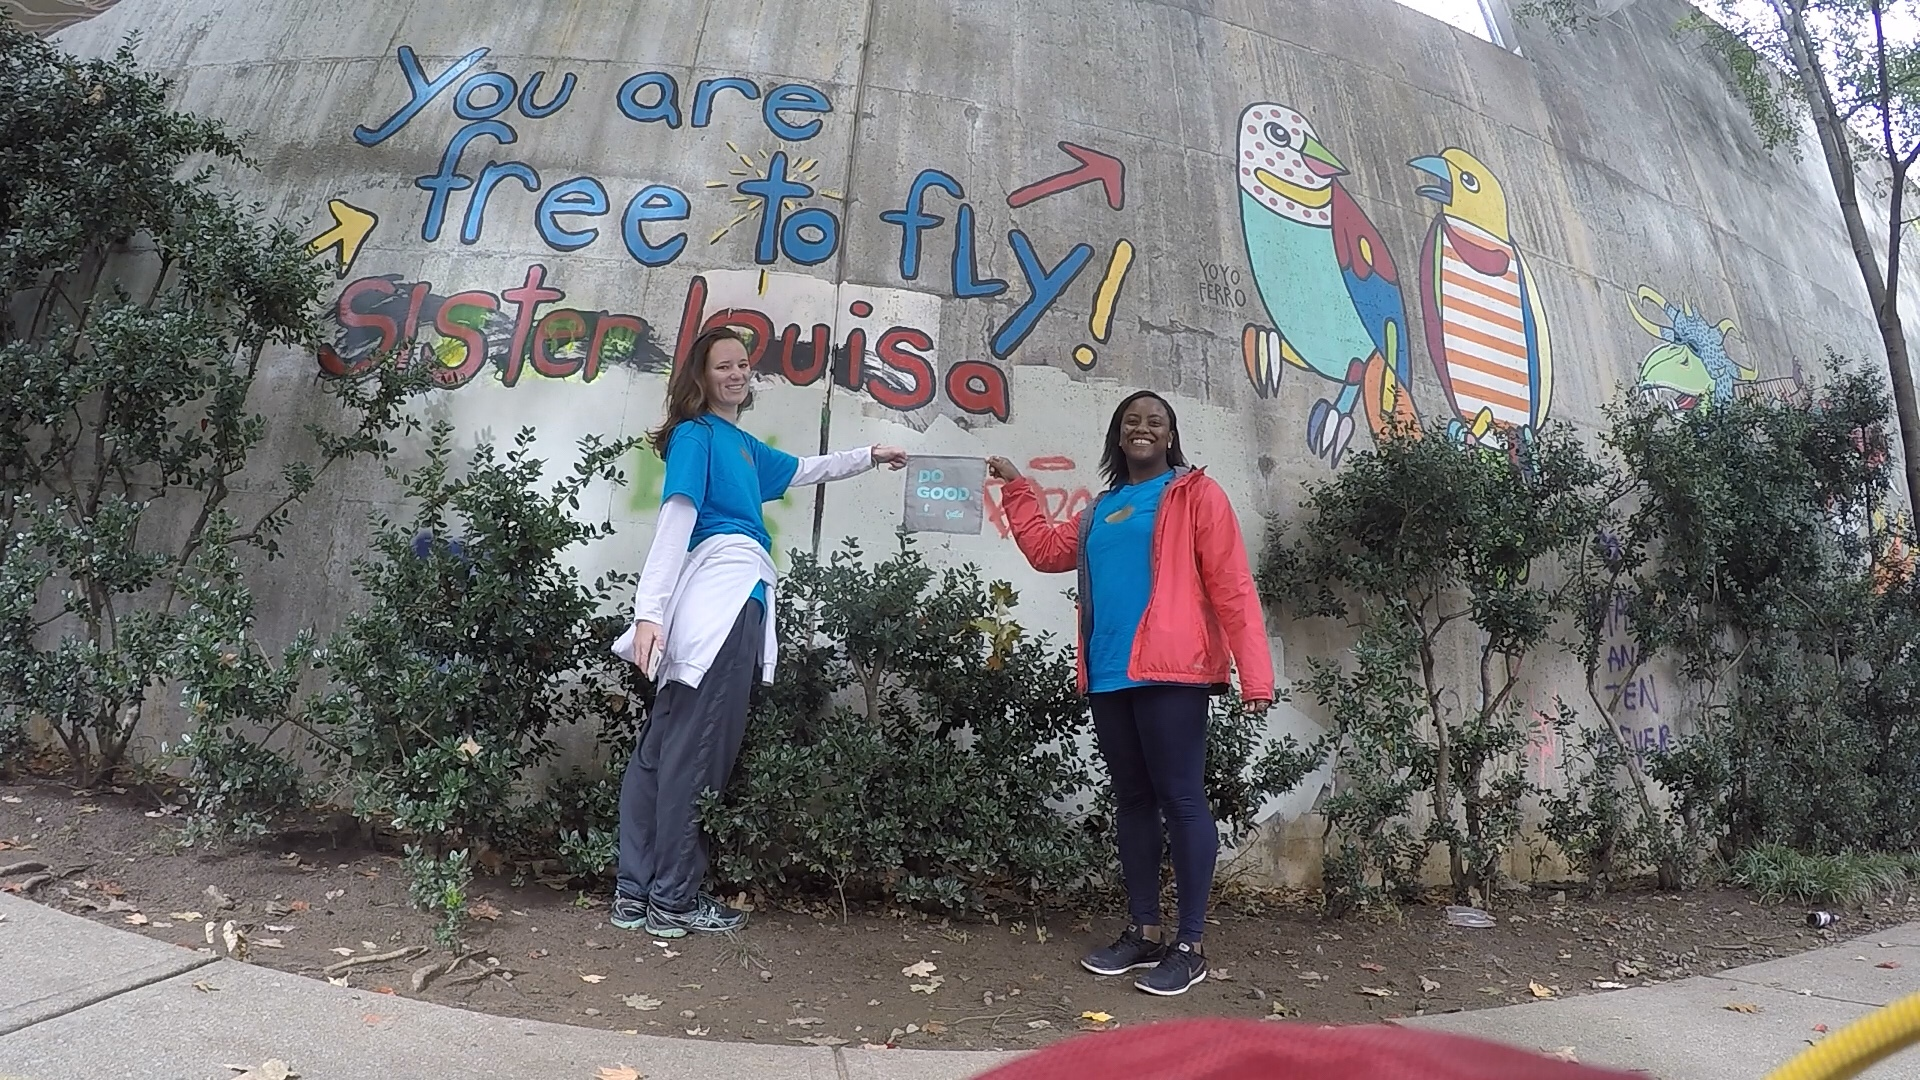 Appreciating the beautiful street art that populates downtown Atlanta! - Questival